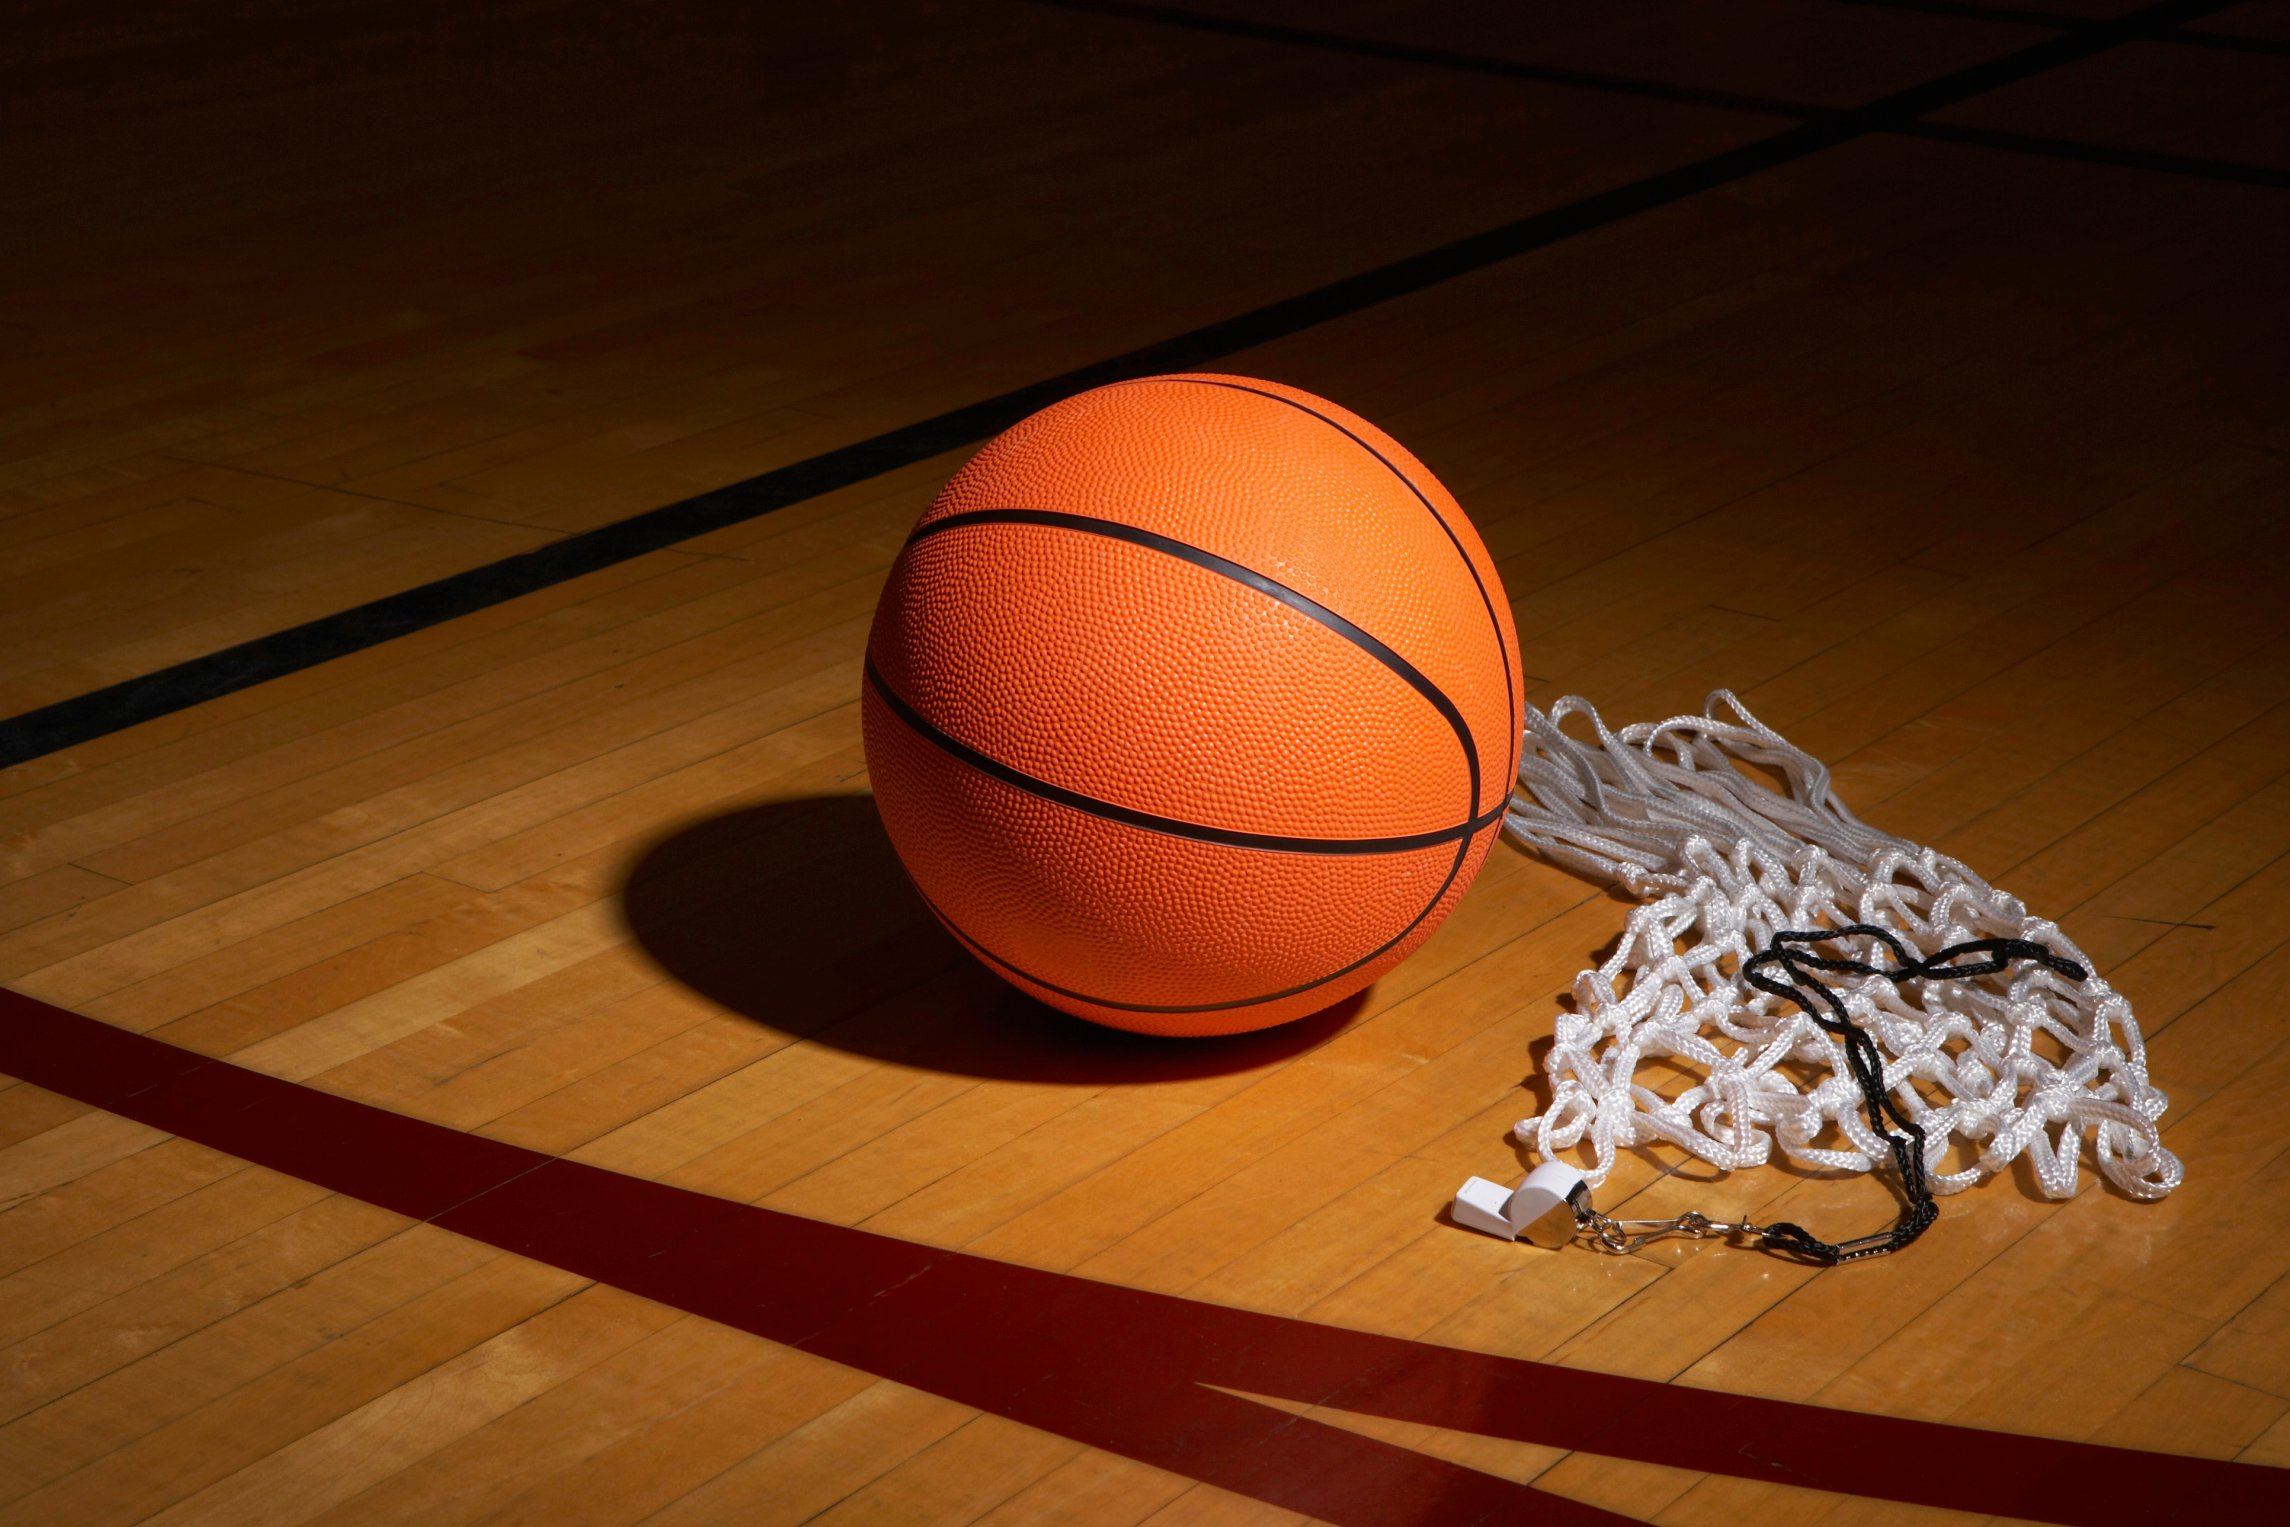 Cool Pro Basketball Wallpaper Download Wallpaper with 2290x1527 2290x1527